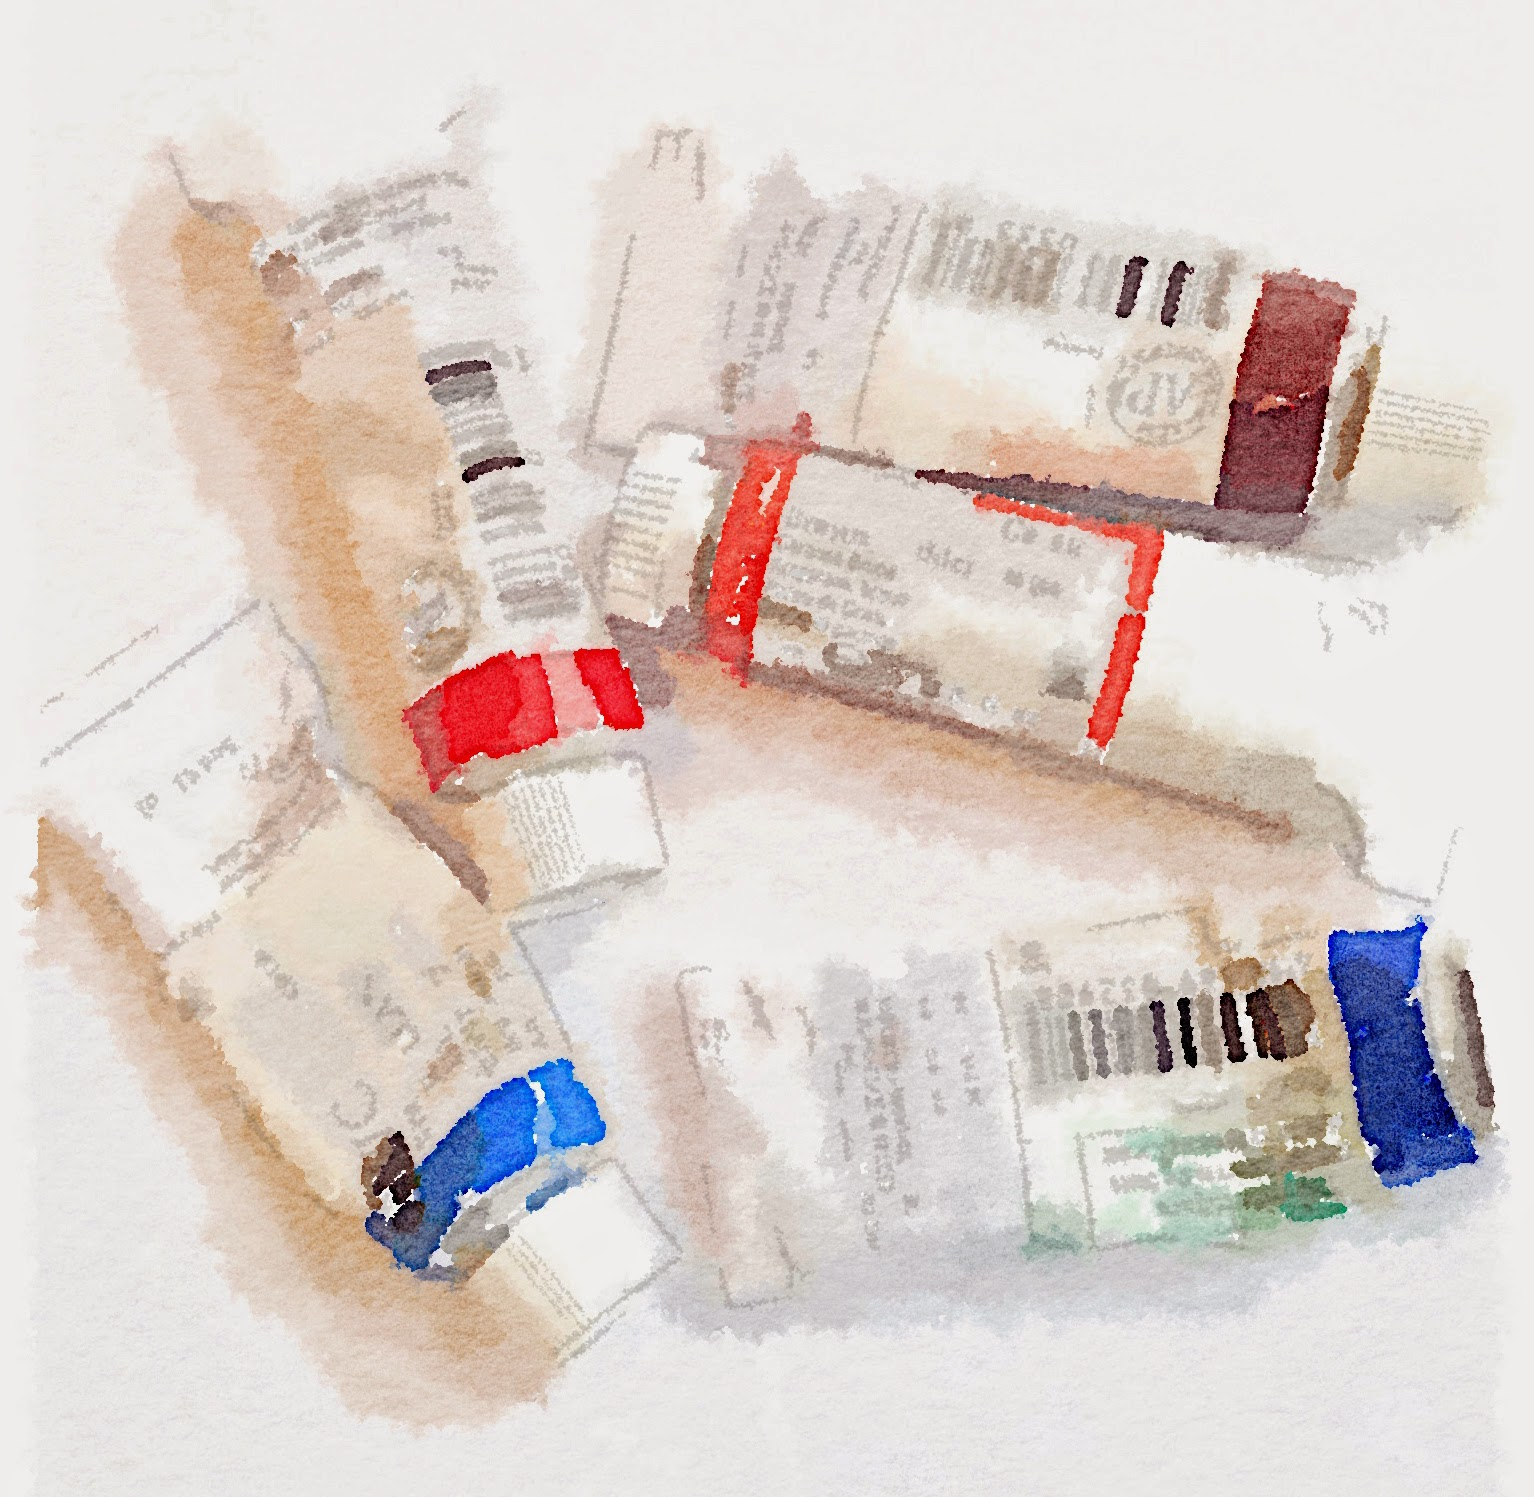 learn watercolor techniques by schulmanart on schulmanart.ning.com